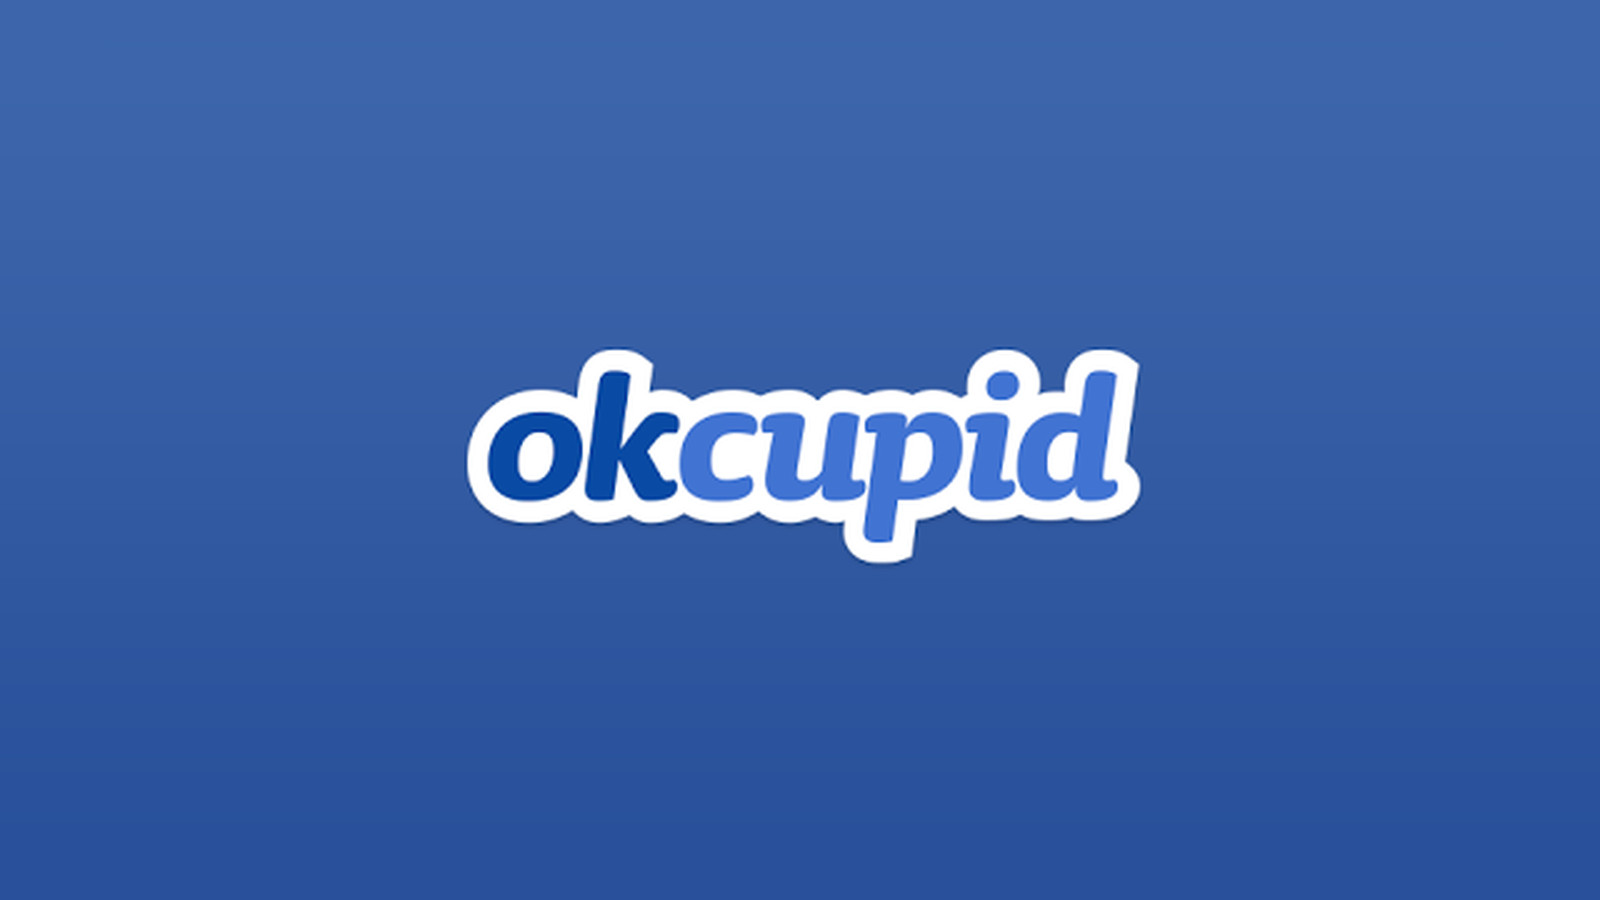 Is okcupid a safe dating site